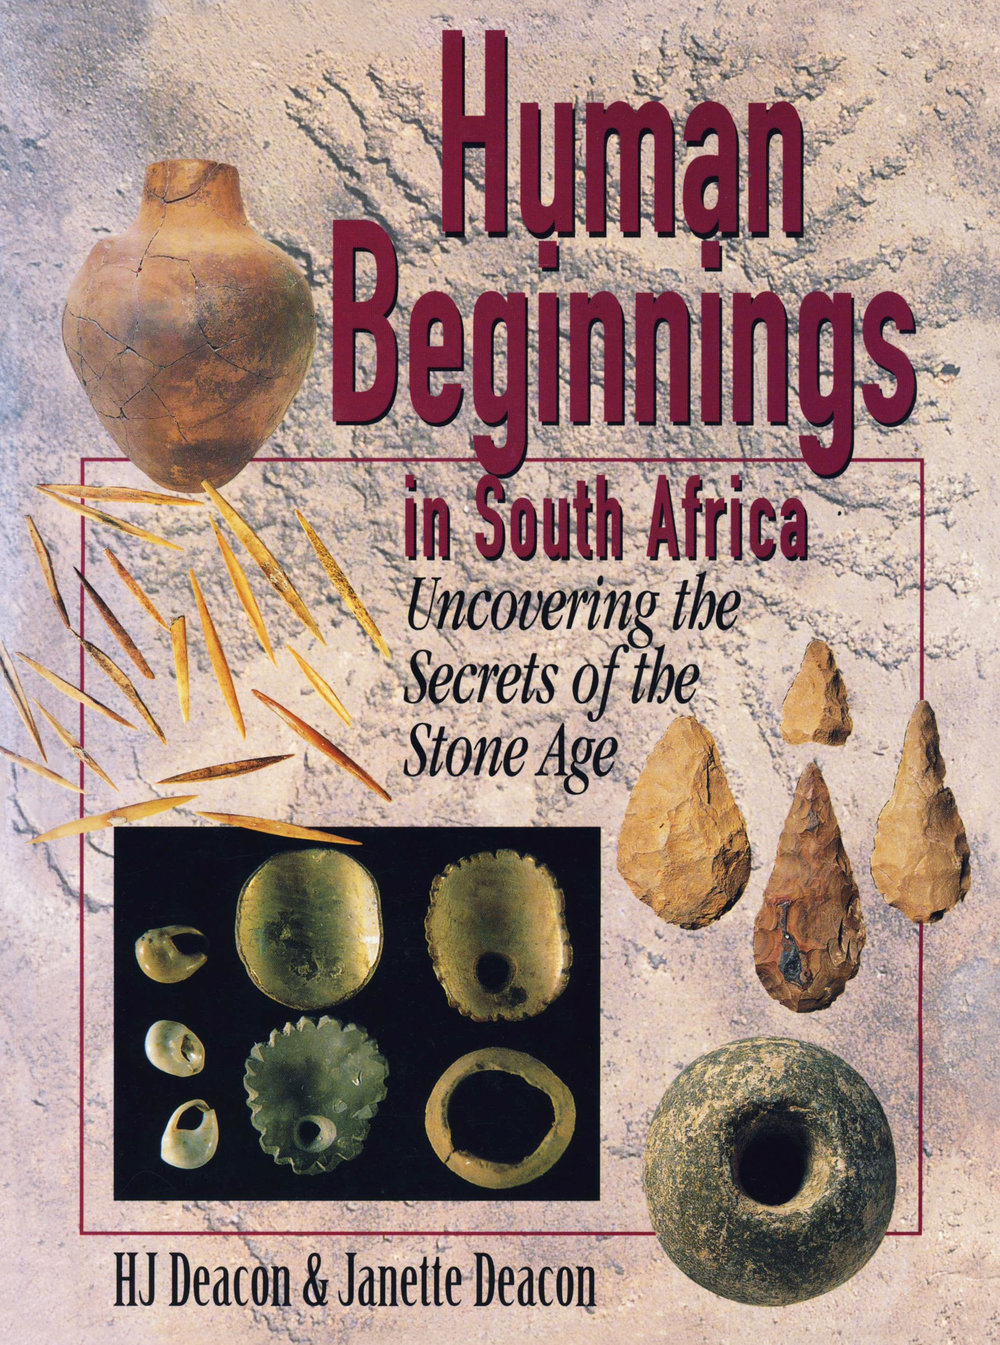 Human Beginnings in South Africa - HJ Deacon & Janette Deacon